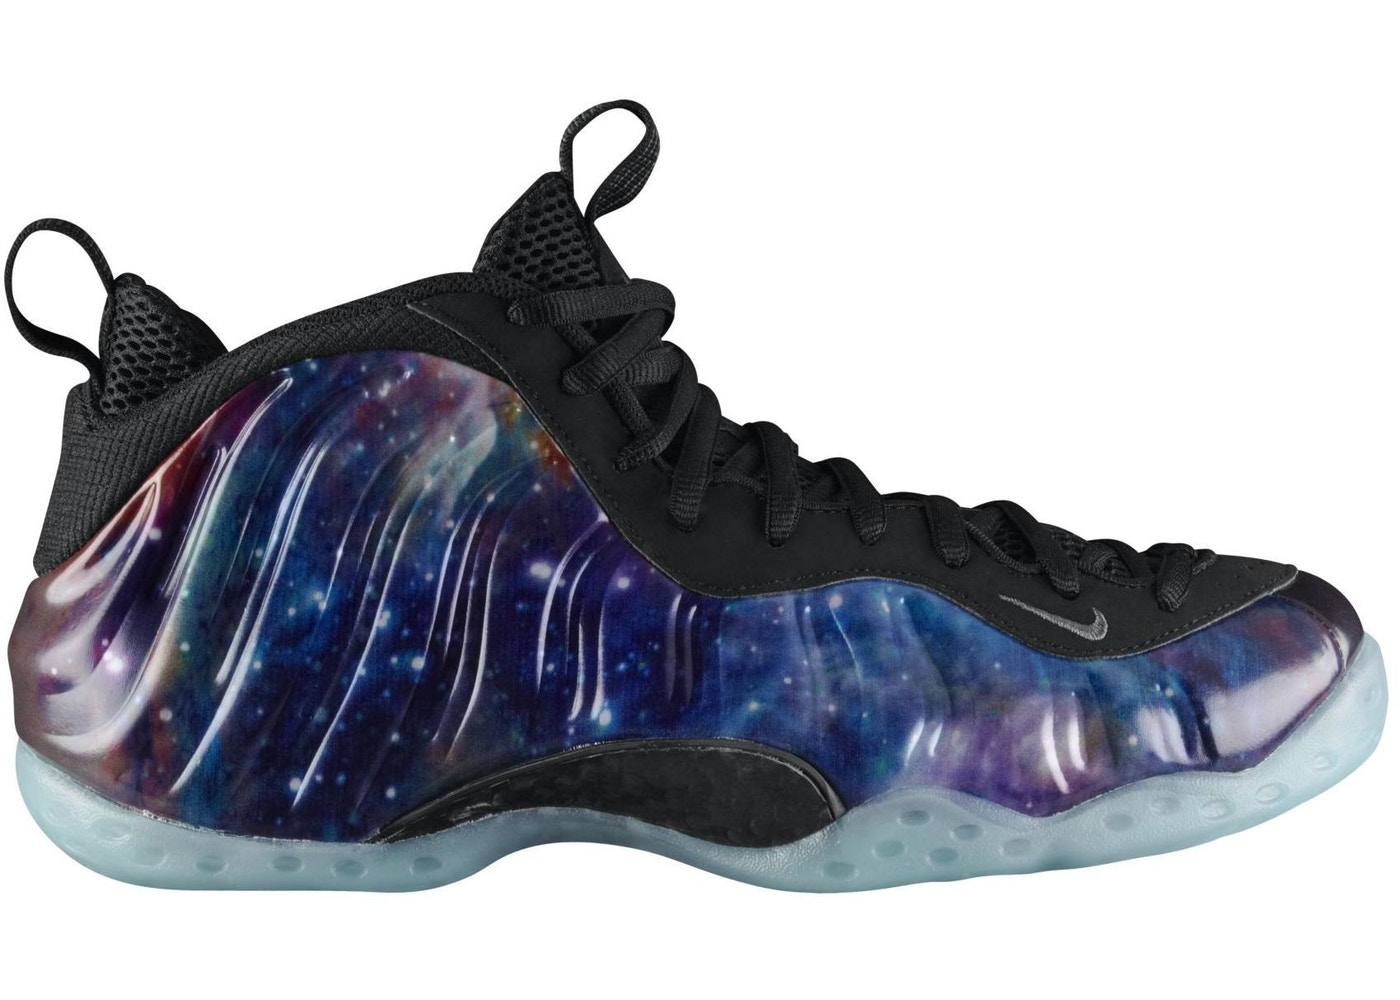 39459d02bb01b Air Foamposite One NRG Galaxy - 521286-800